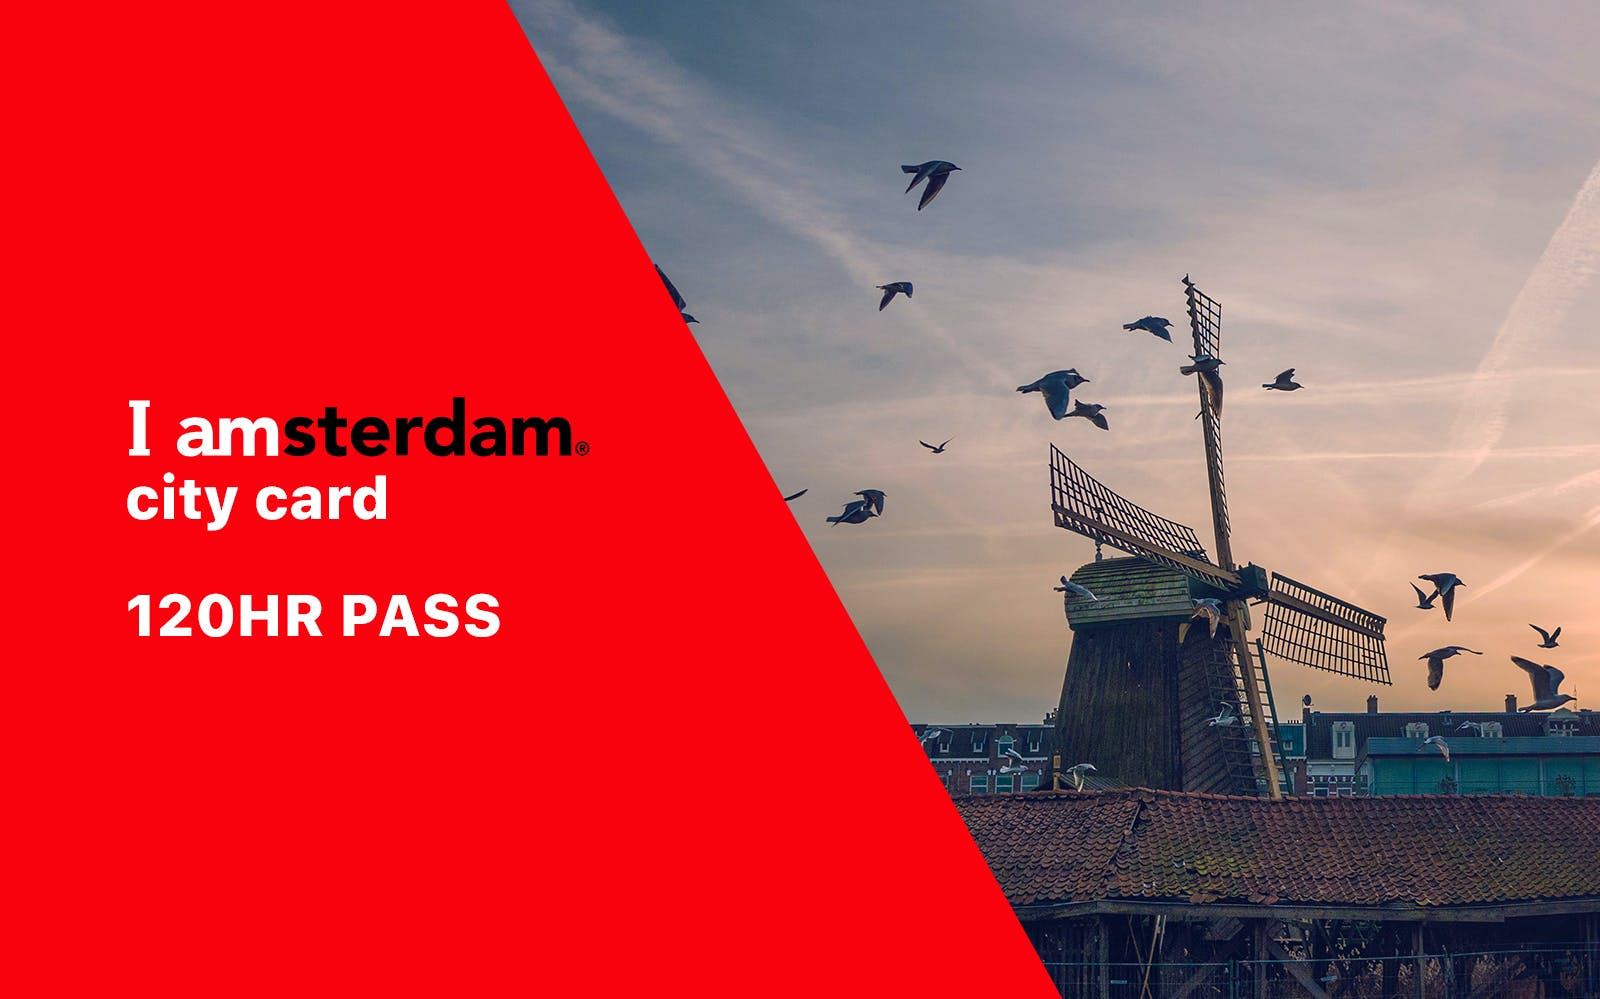 I Amsterdam City Card - 5 Day